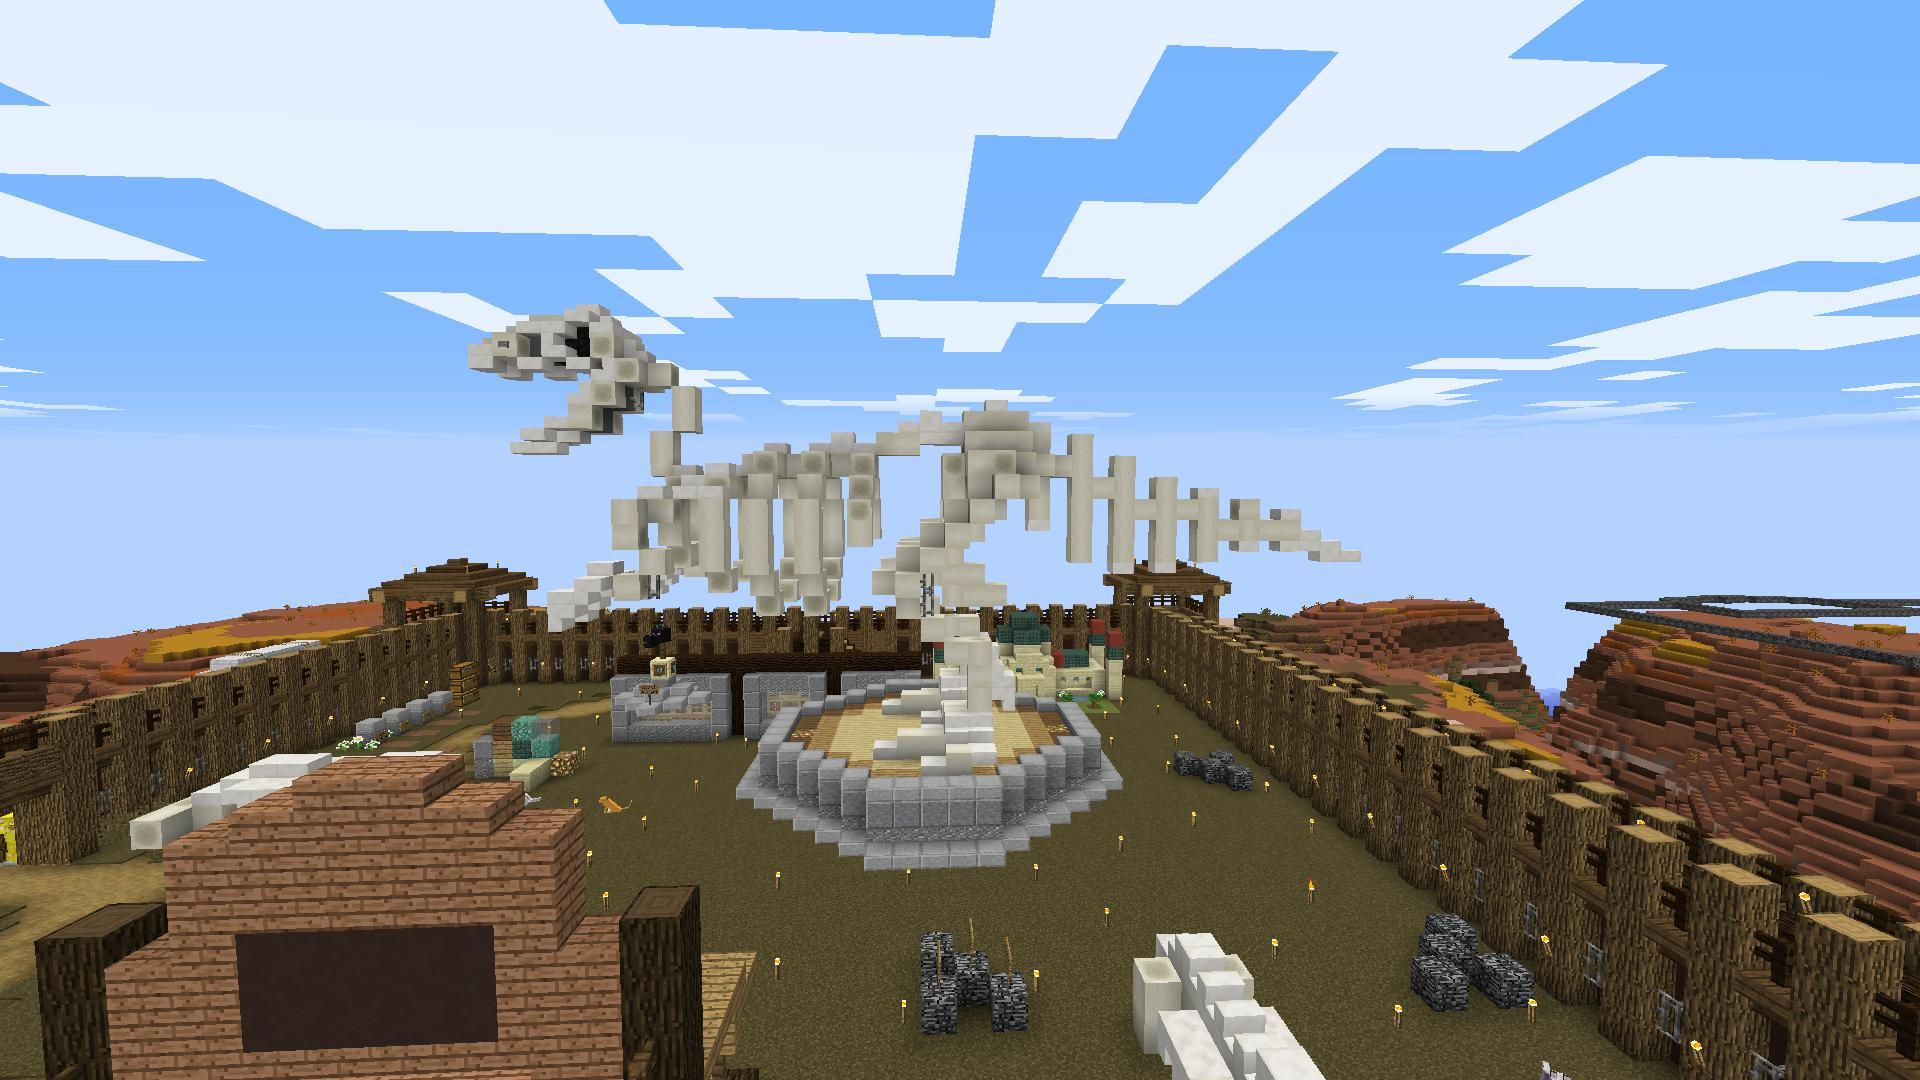 minecraft creations on twitter quotreally cool usage of the